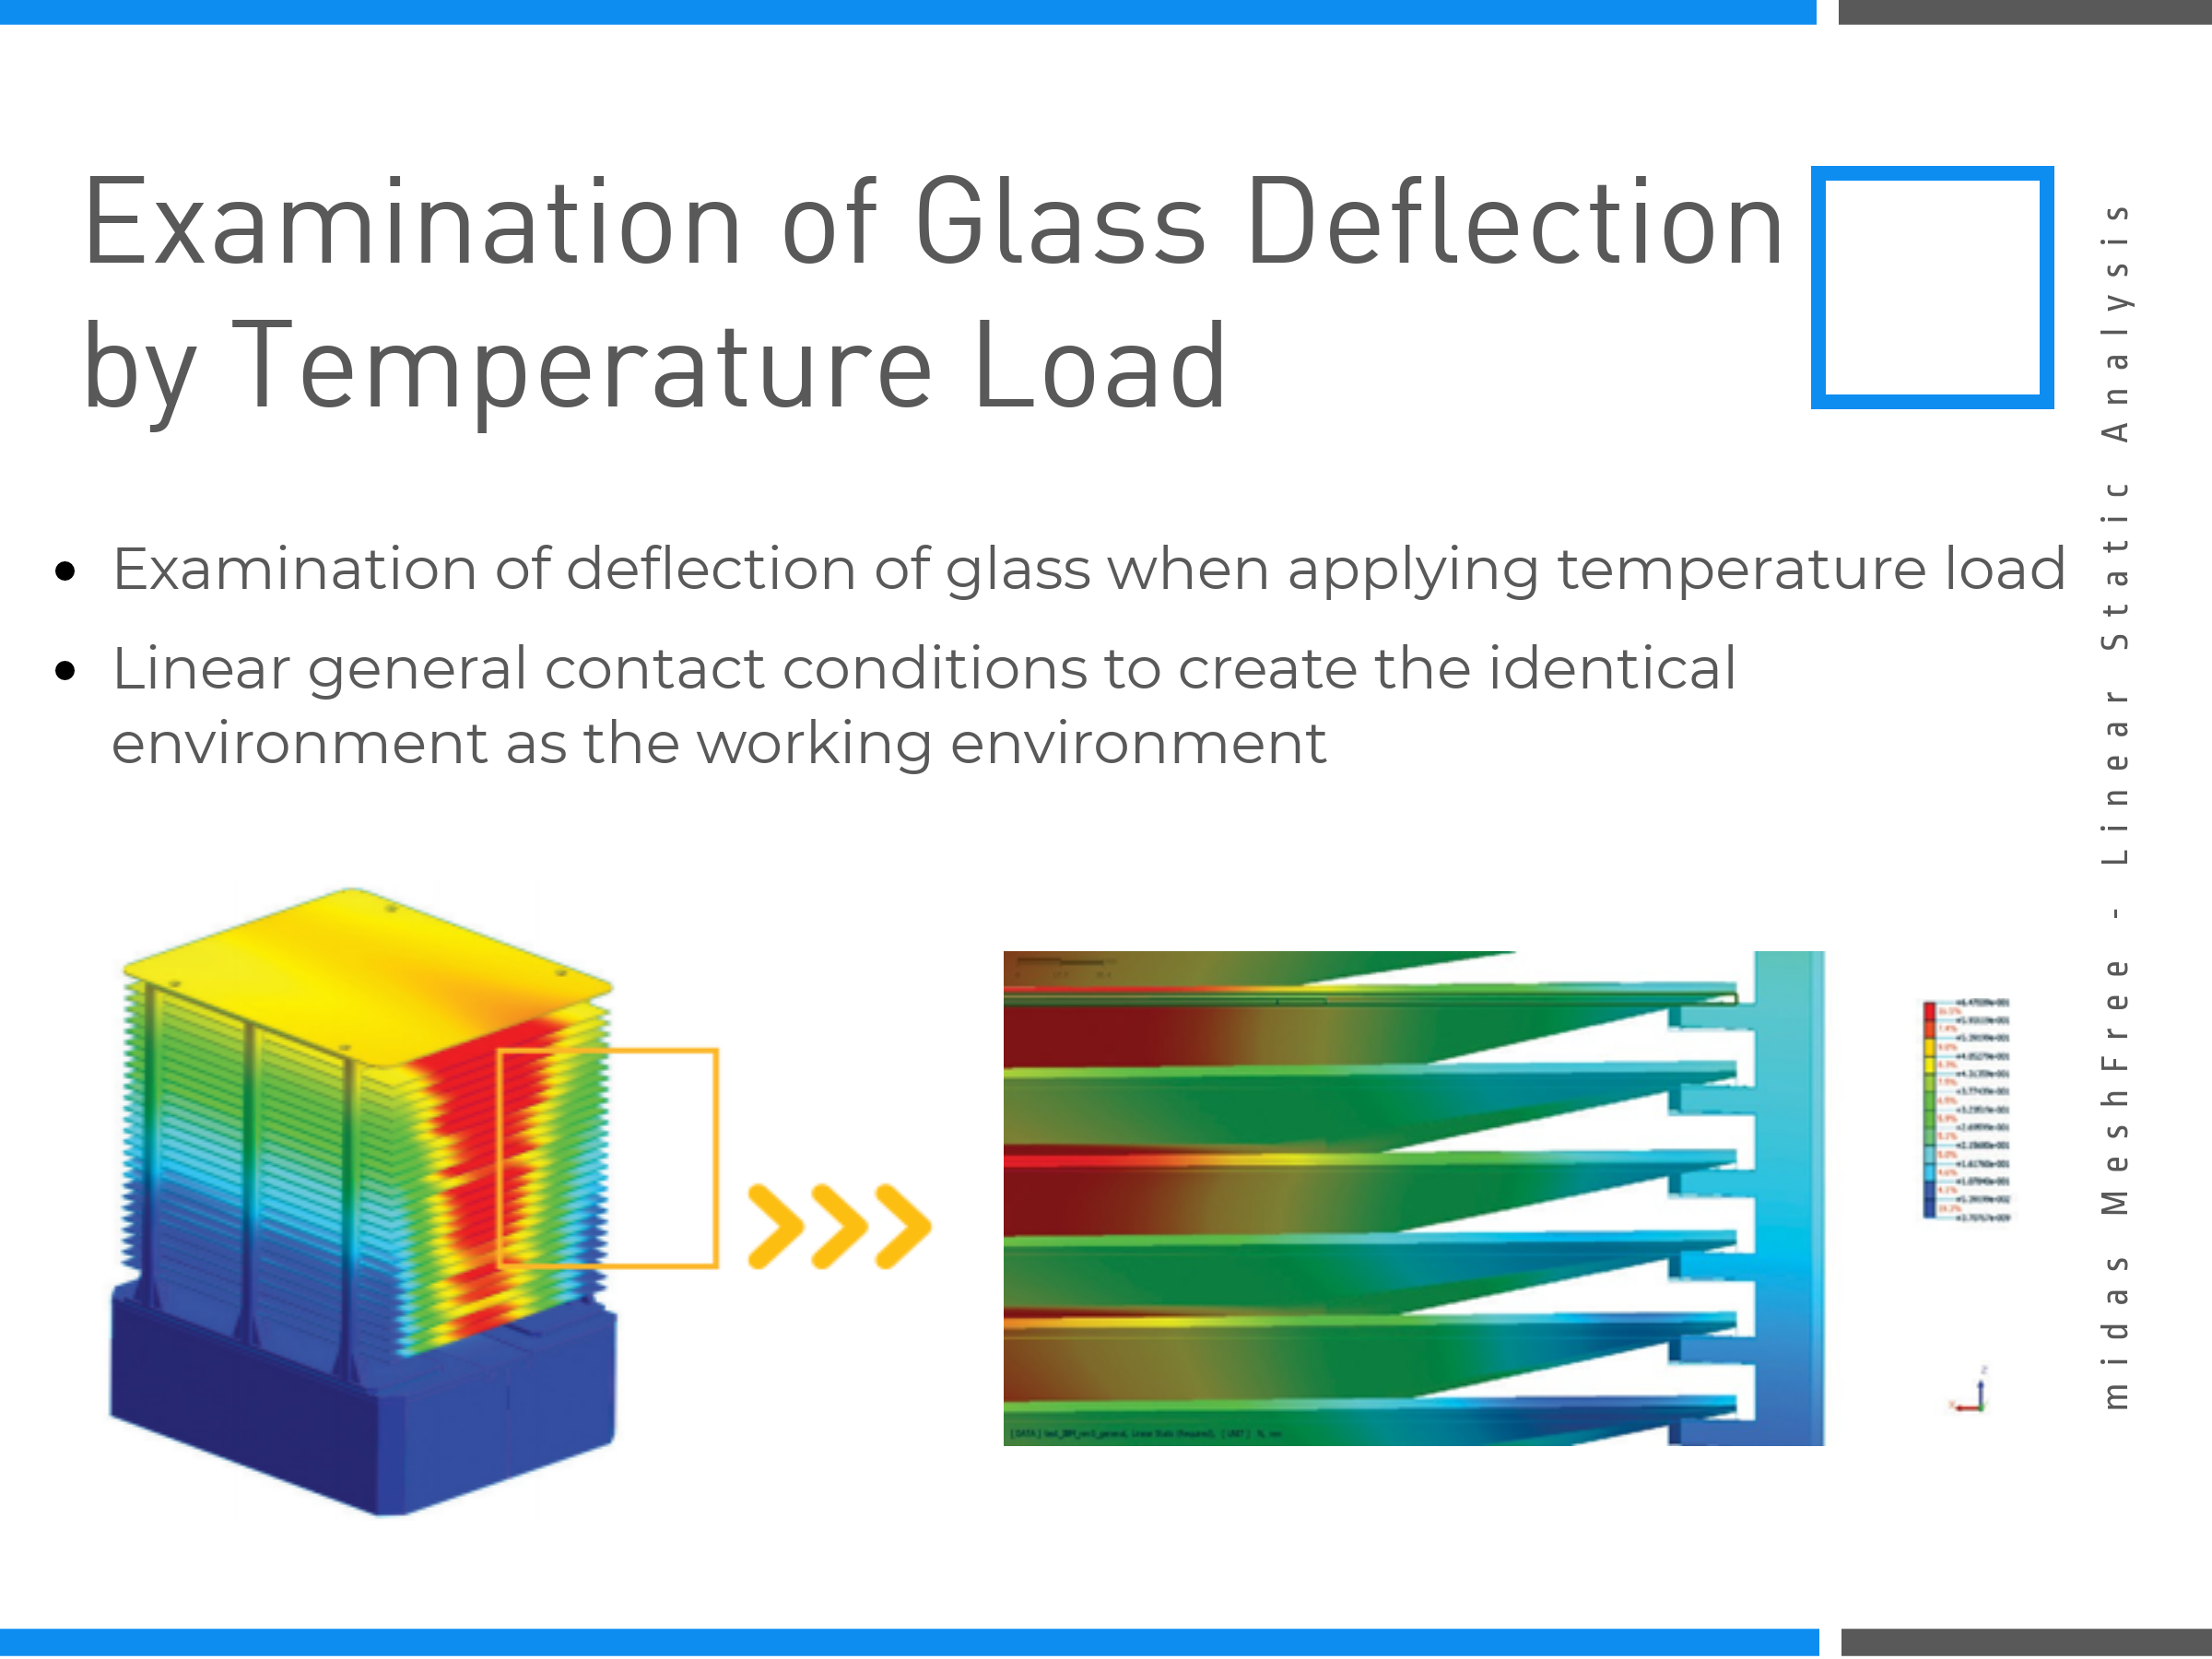 Examination of Glass Deflection by Temperature Load on MeshFree (Slide 6)